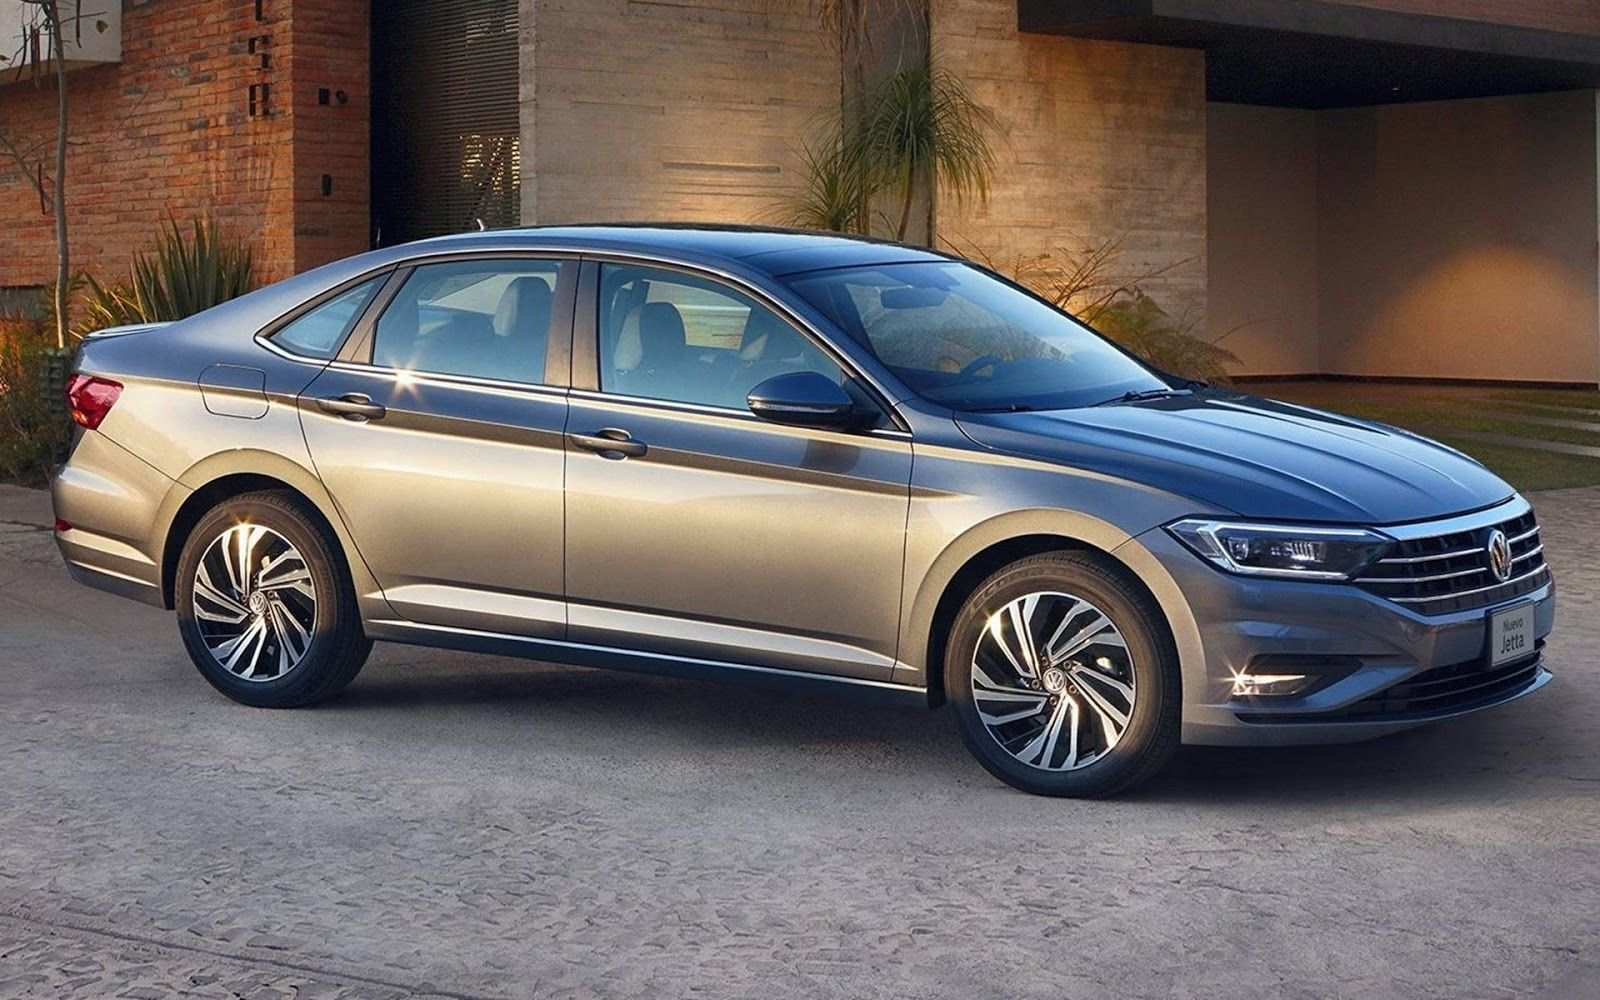 92 All New Vw Jetta 2019 Mexico Images